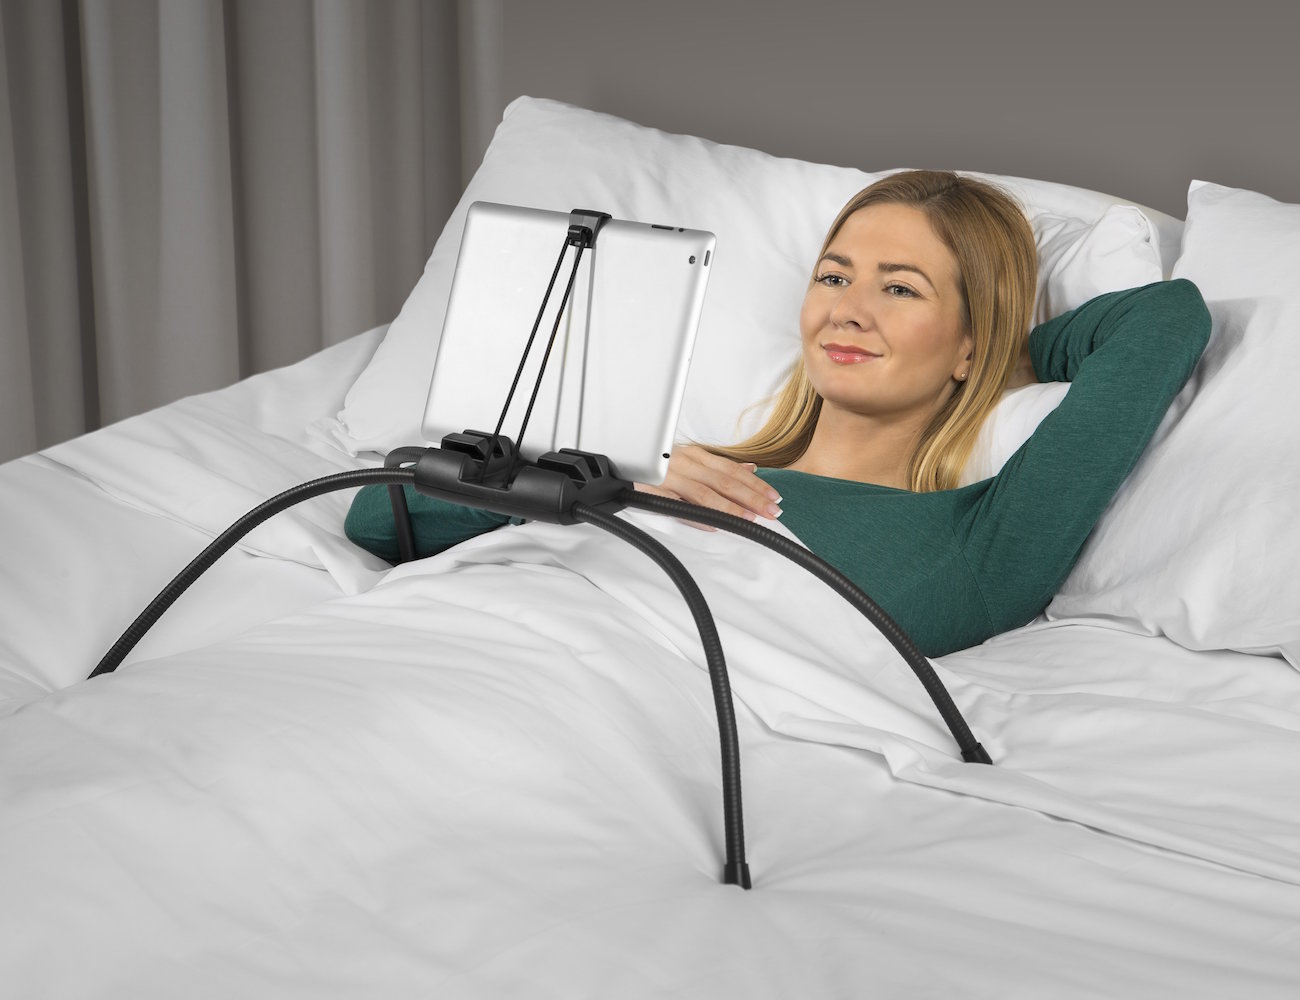 Tablift Tablet Stand – Lay Back and Enjoy Browsing